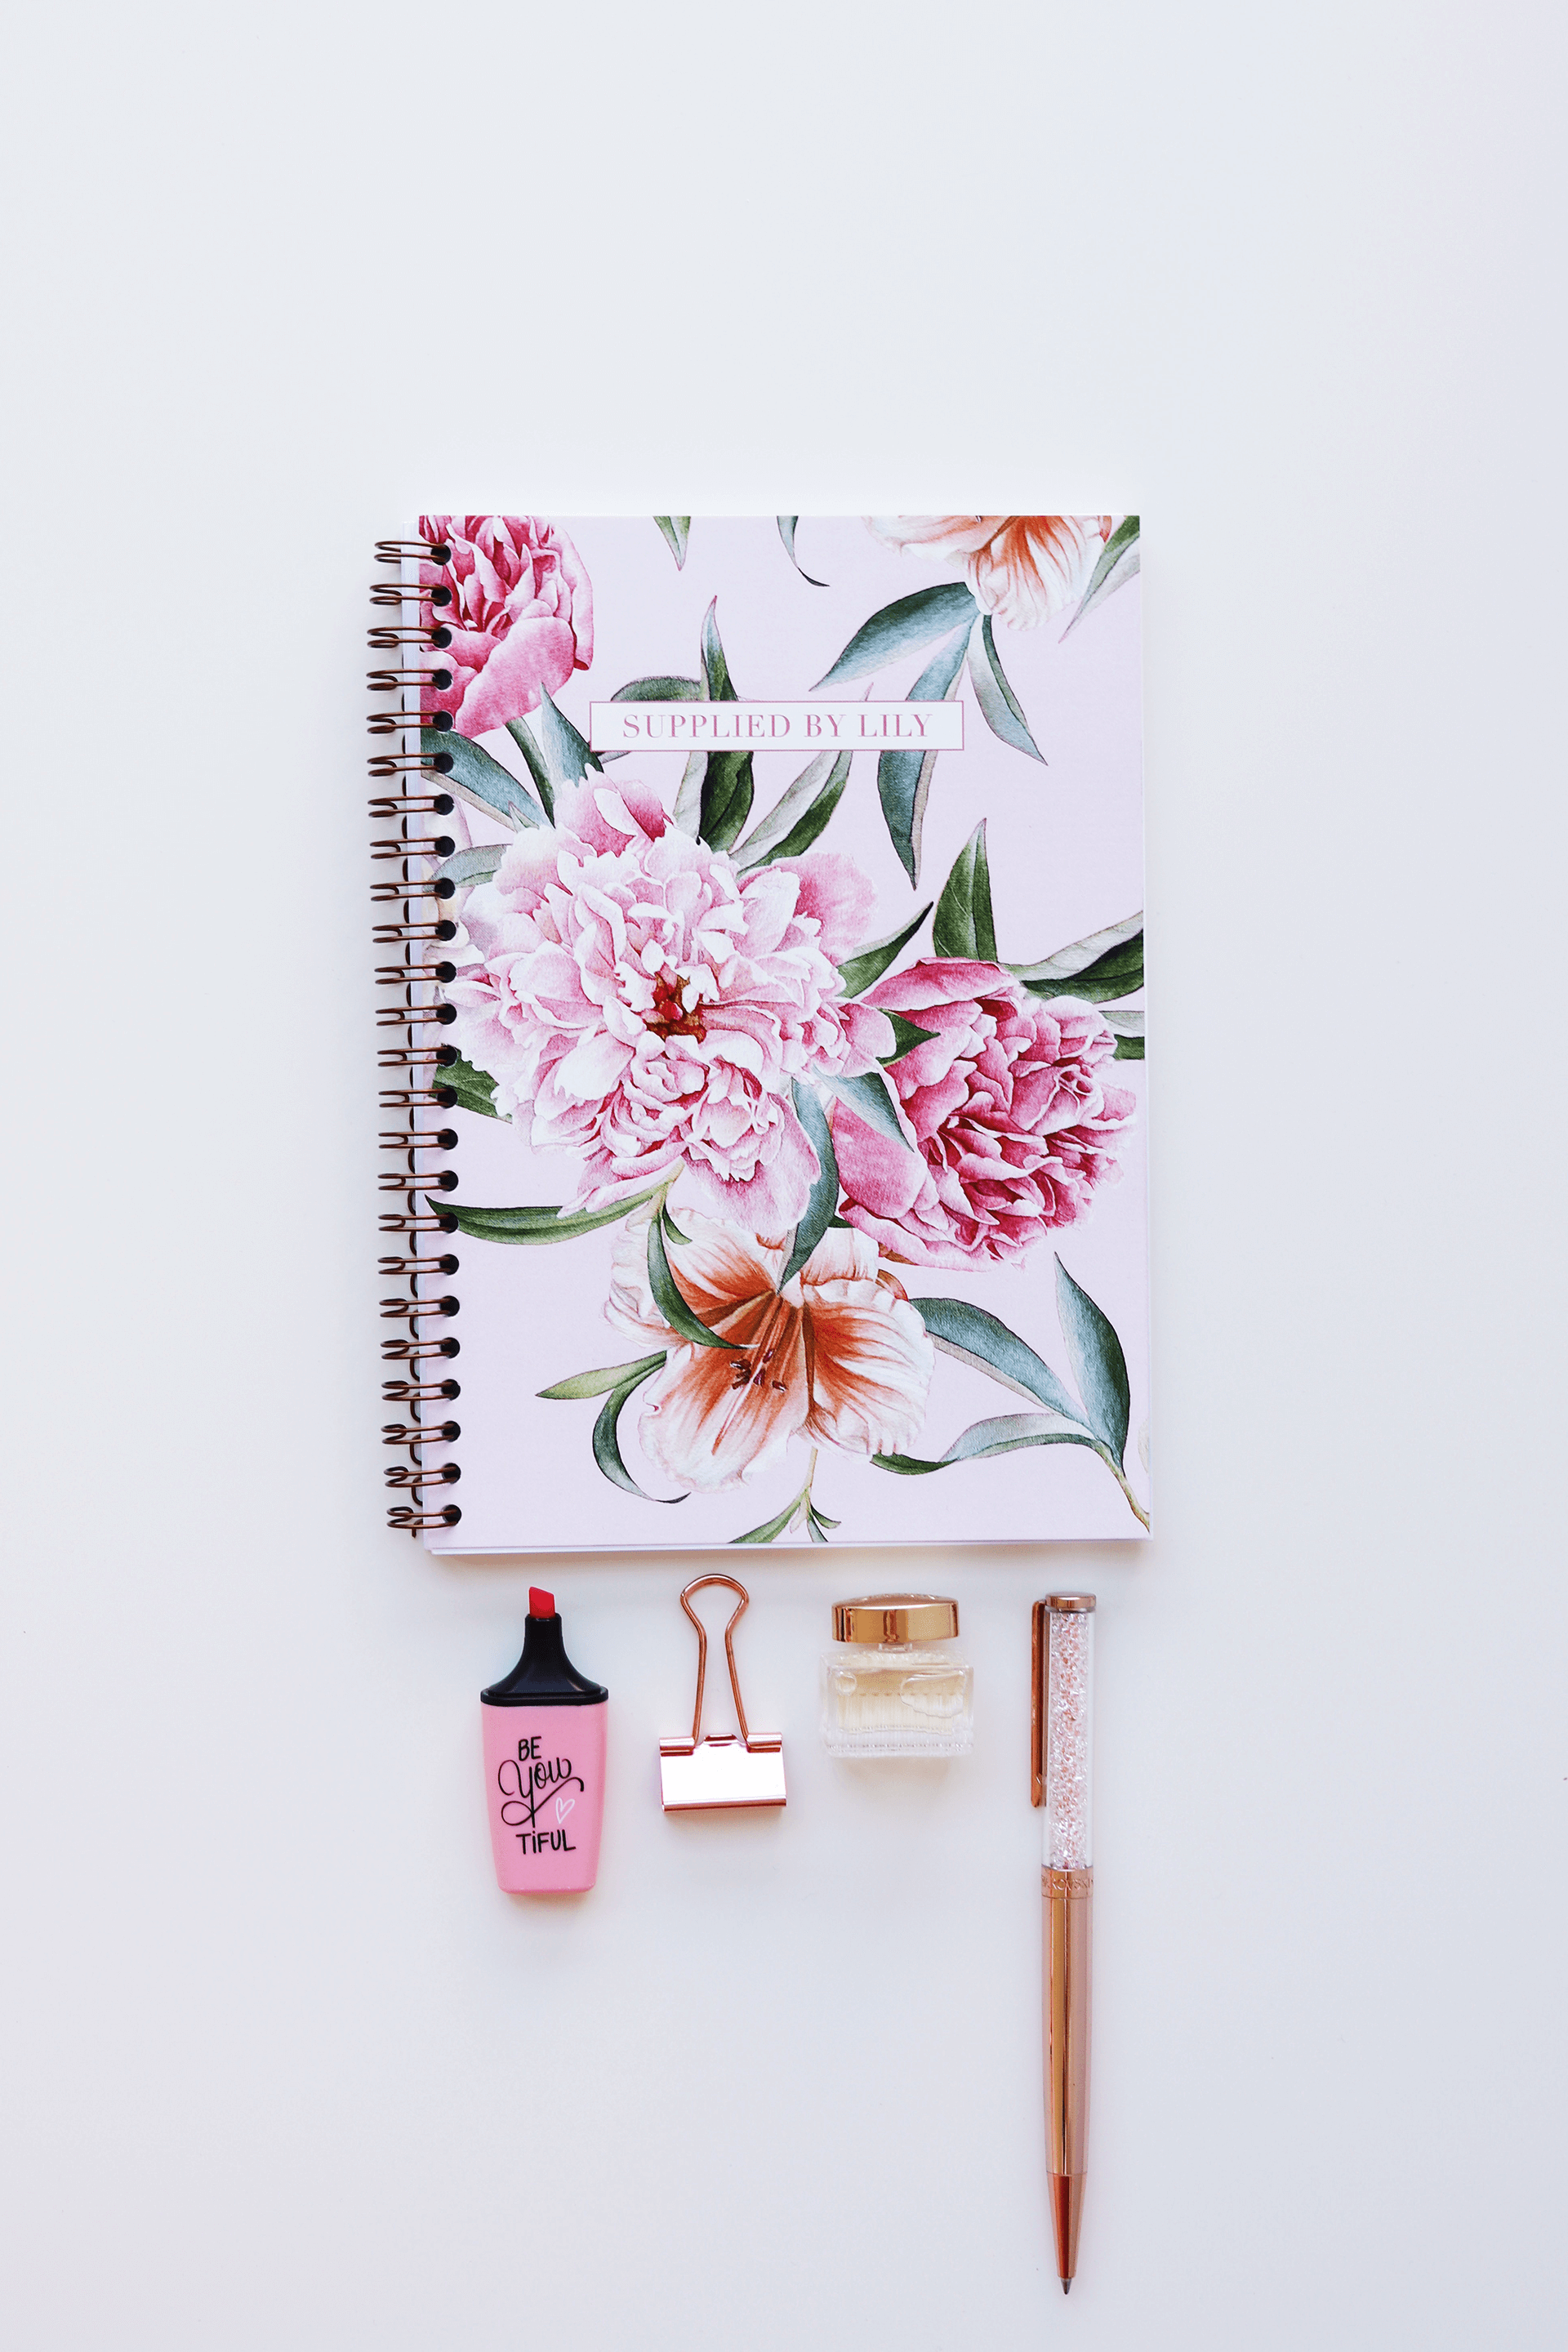 A5 Spiral Notebook In Luxurious Blush Floral Supplied By Lily